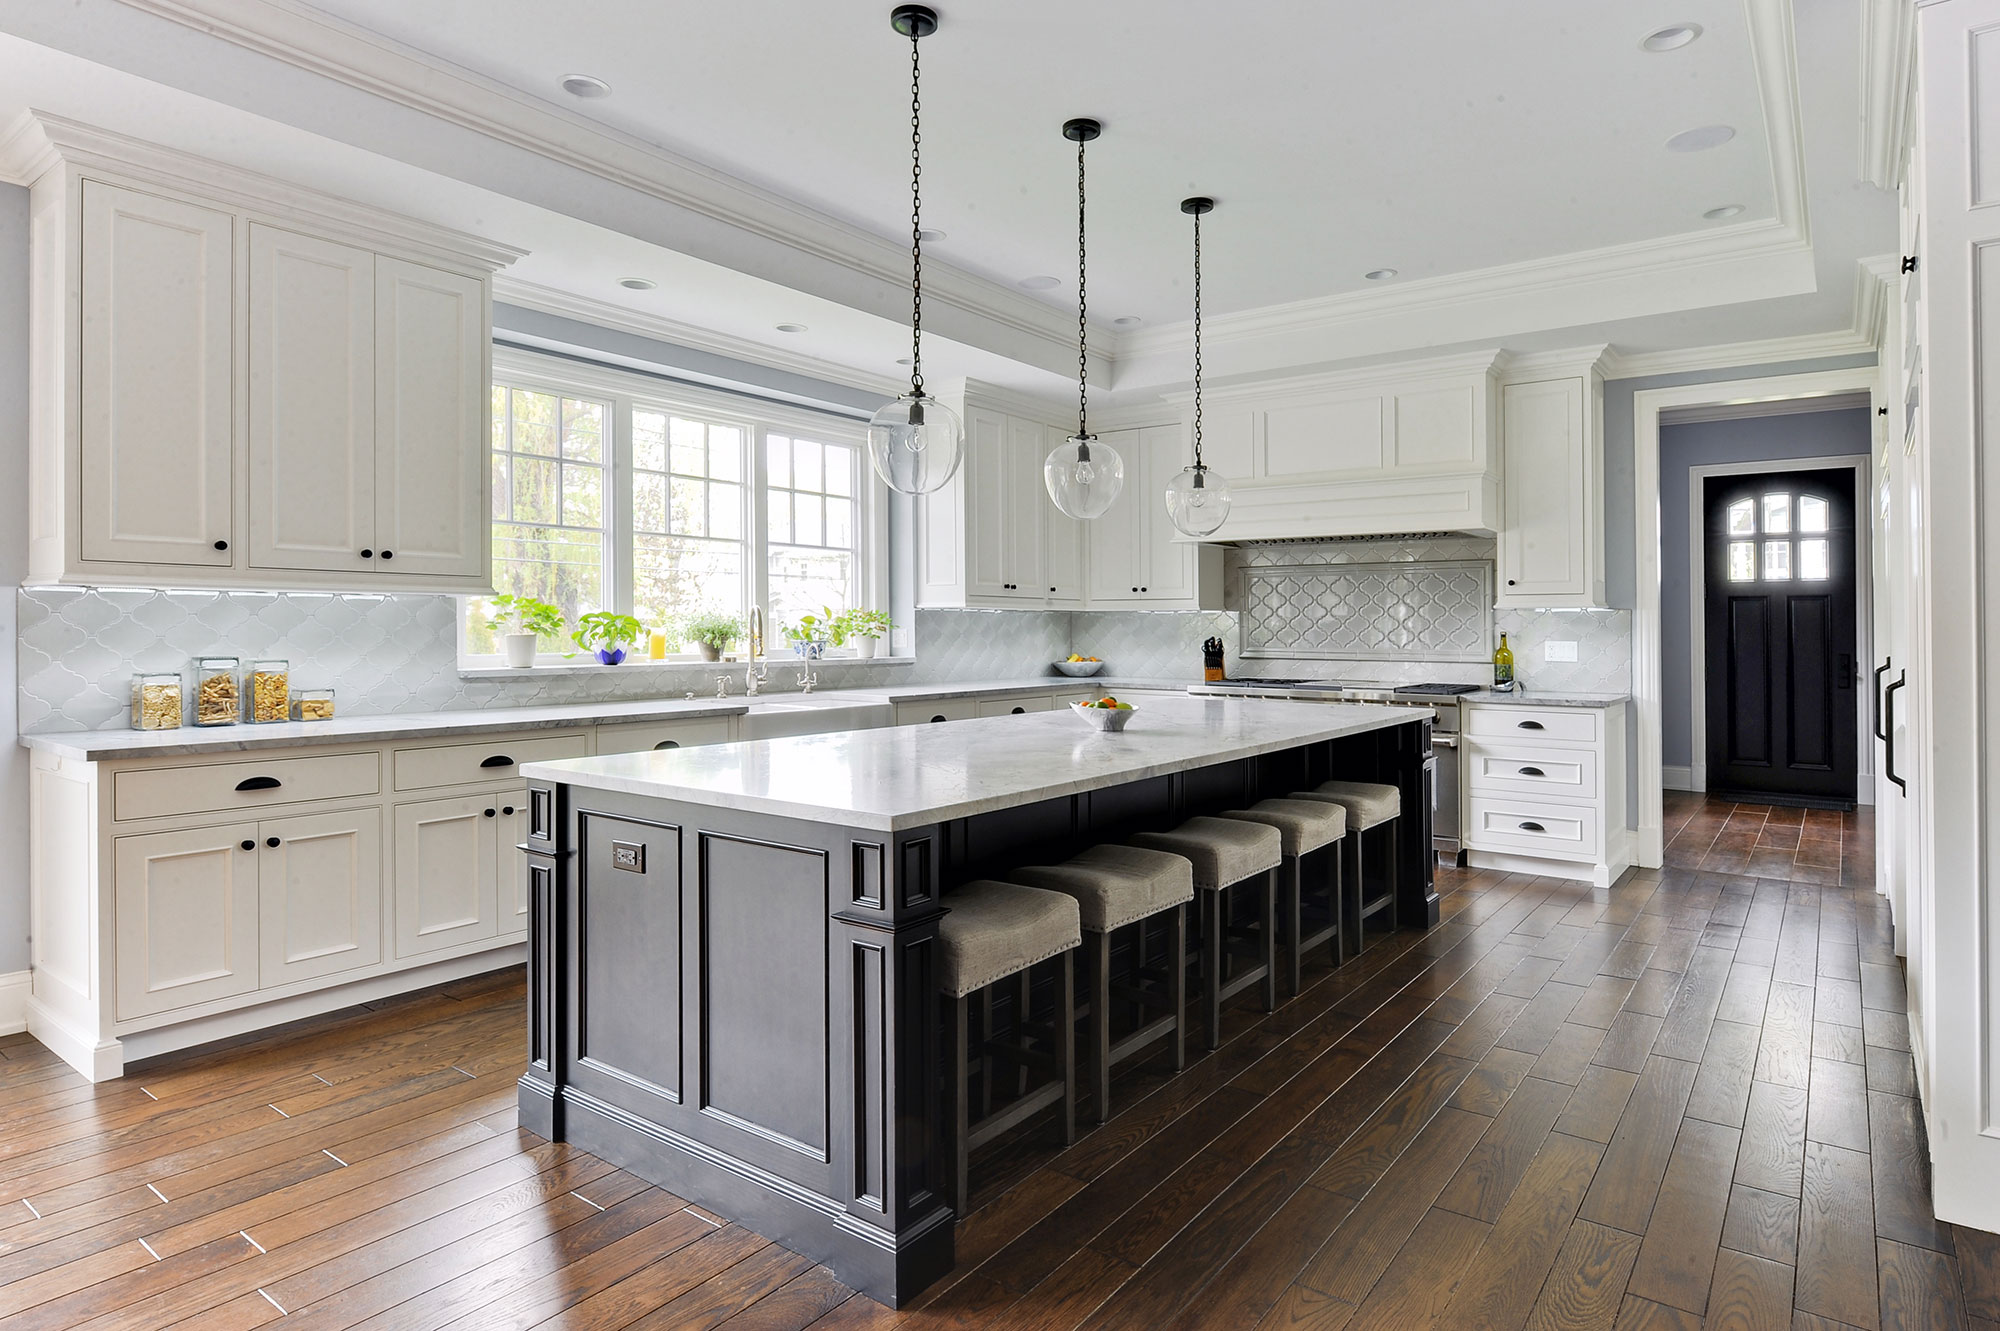 Kitchen With Wood Cabinetry, Granite Countertops, And Stainless Steel  Appliances